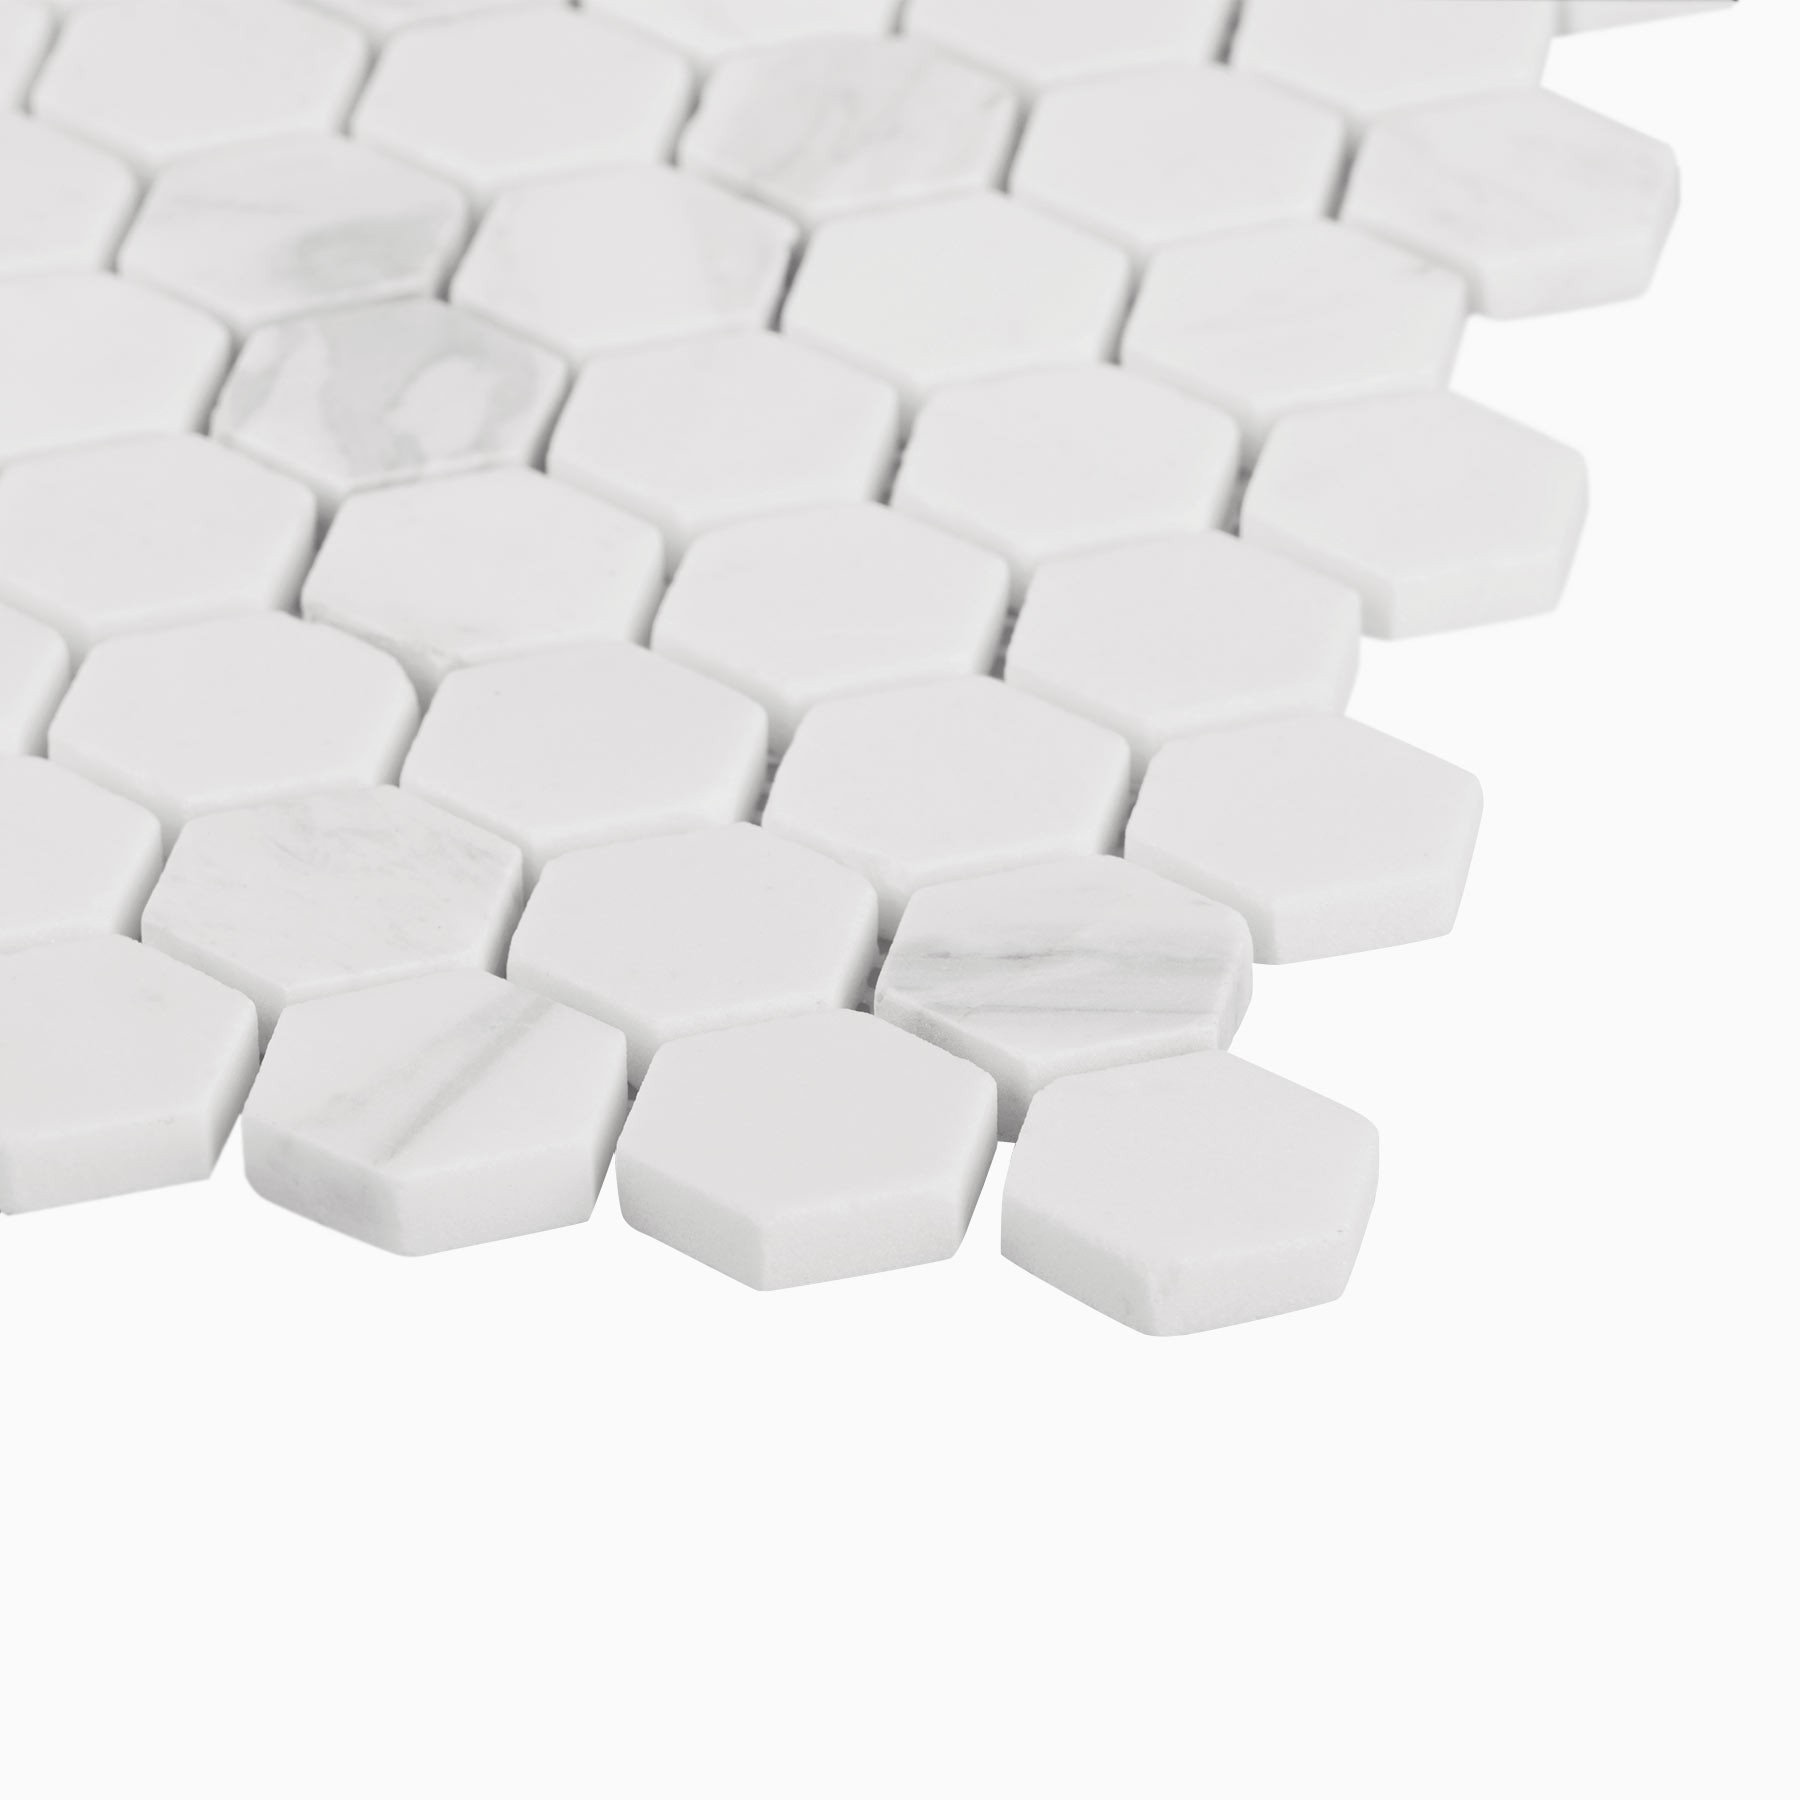 Volakas hexagon Mosaic White natural White Marble 305*305mm